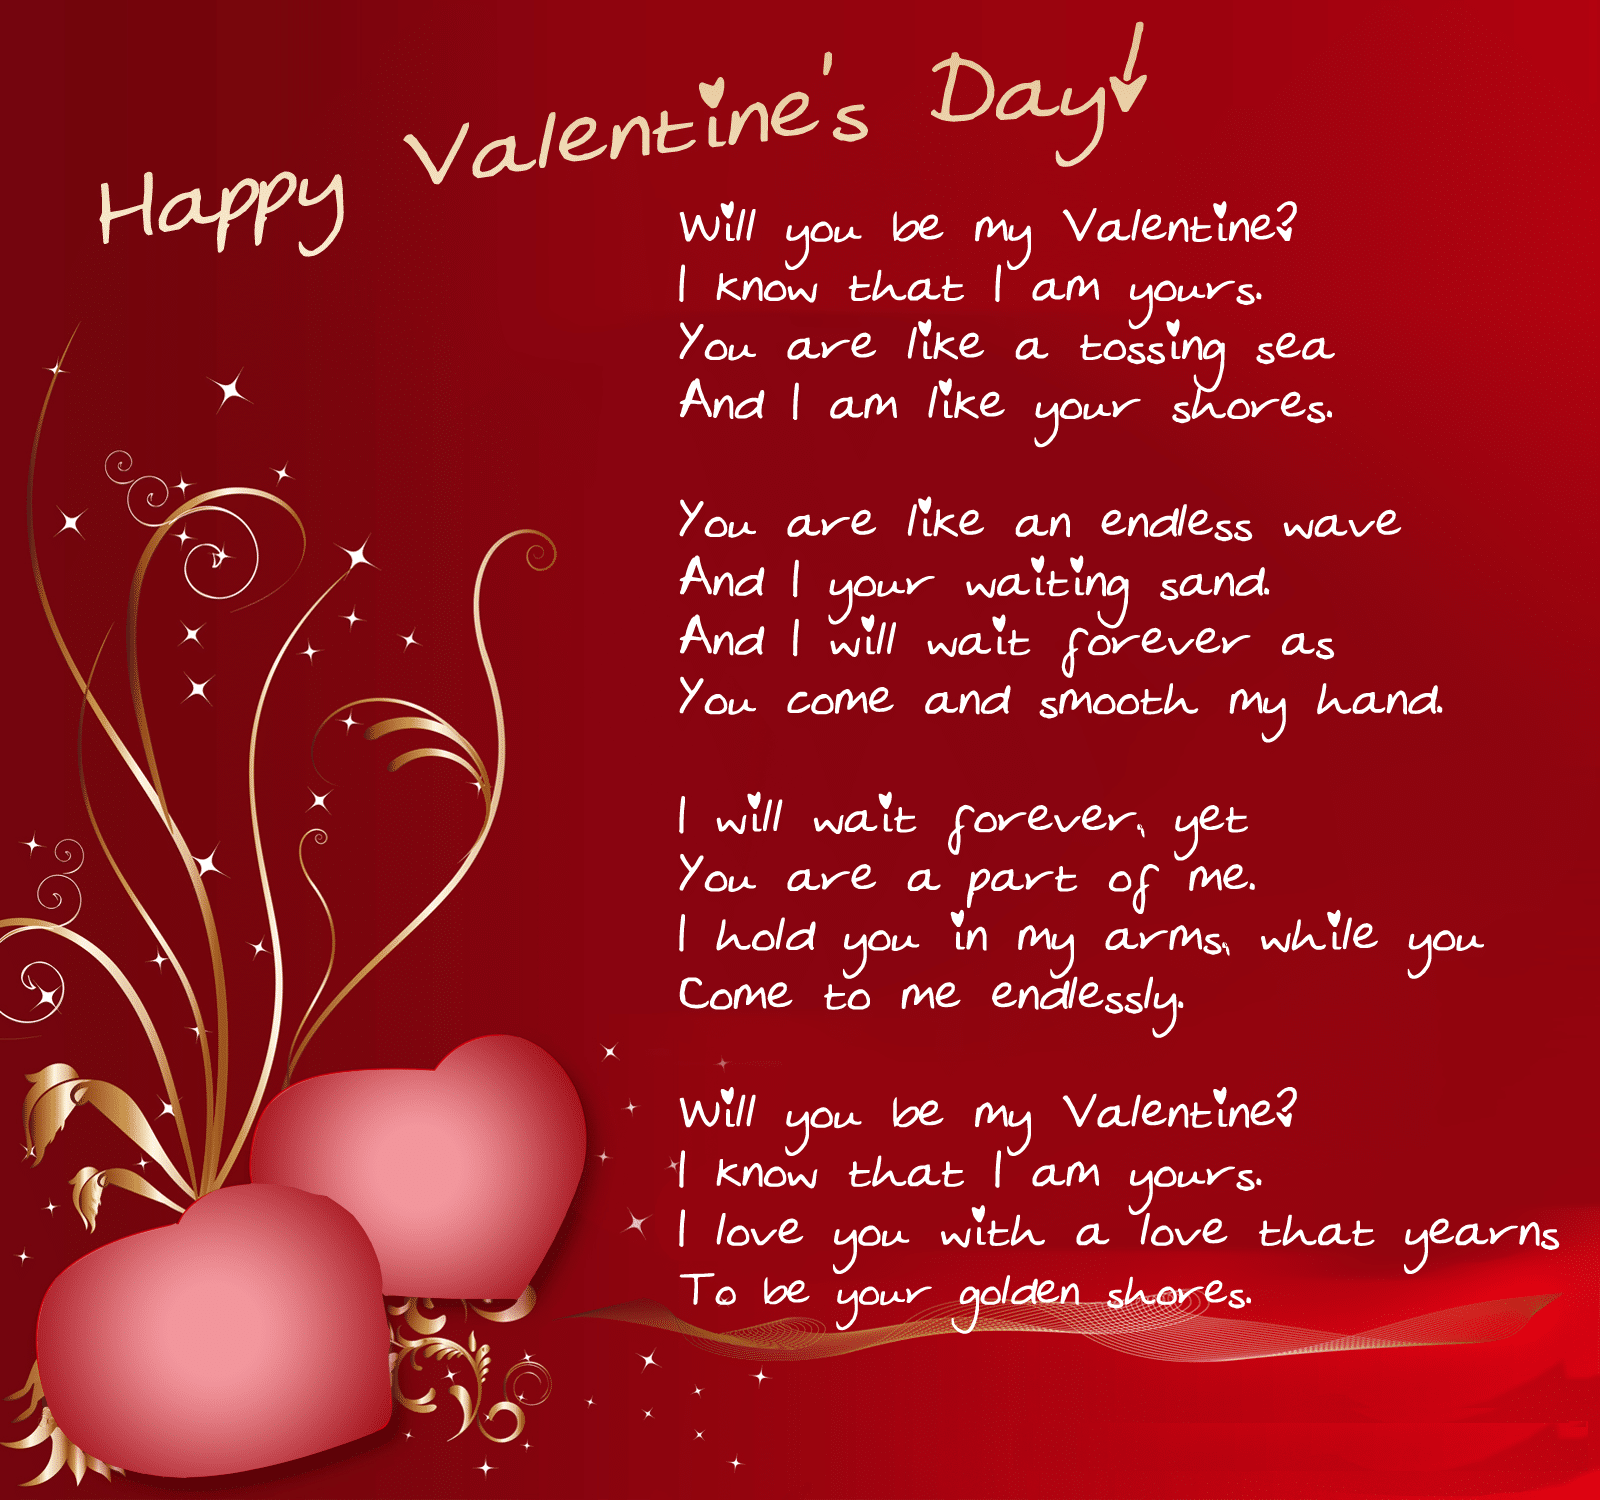 Happy Valentine's Day Wishes Greeting Cards